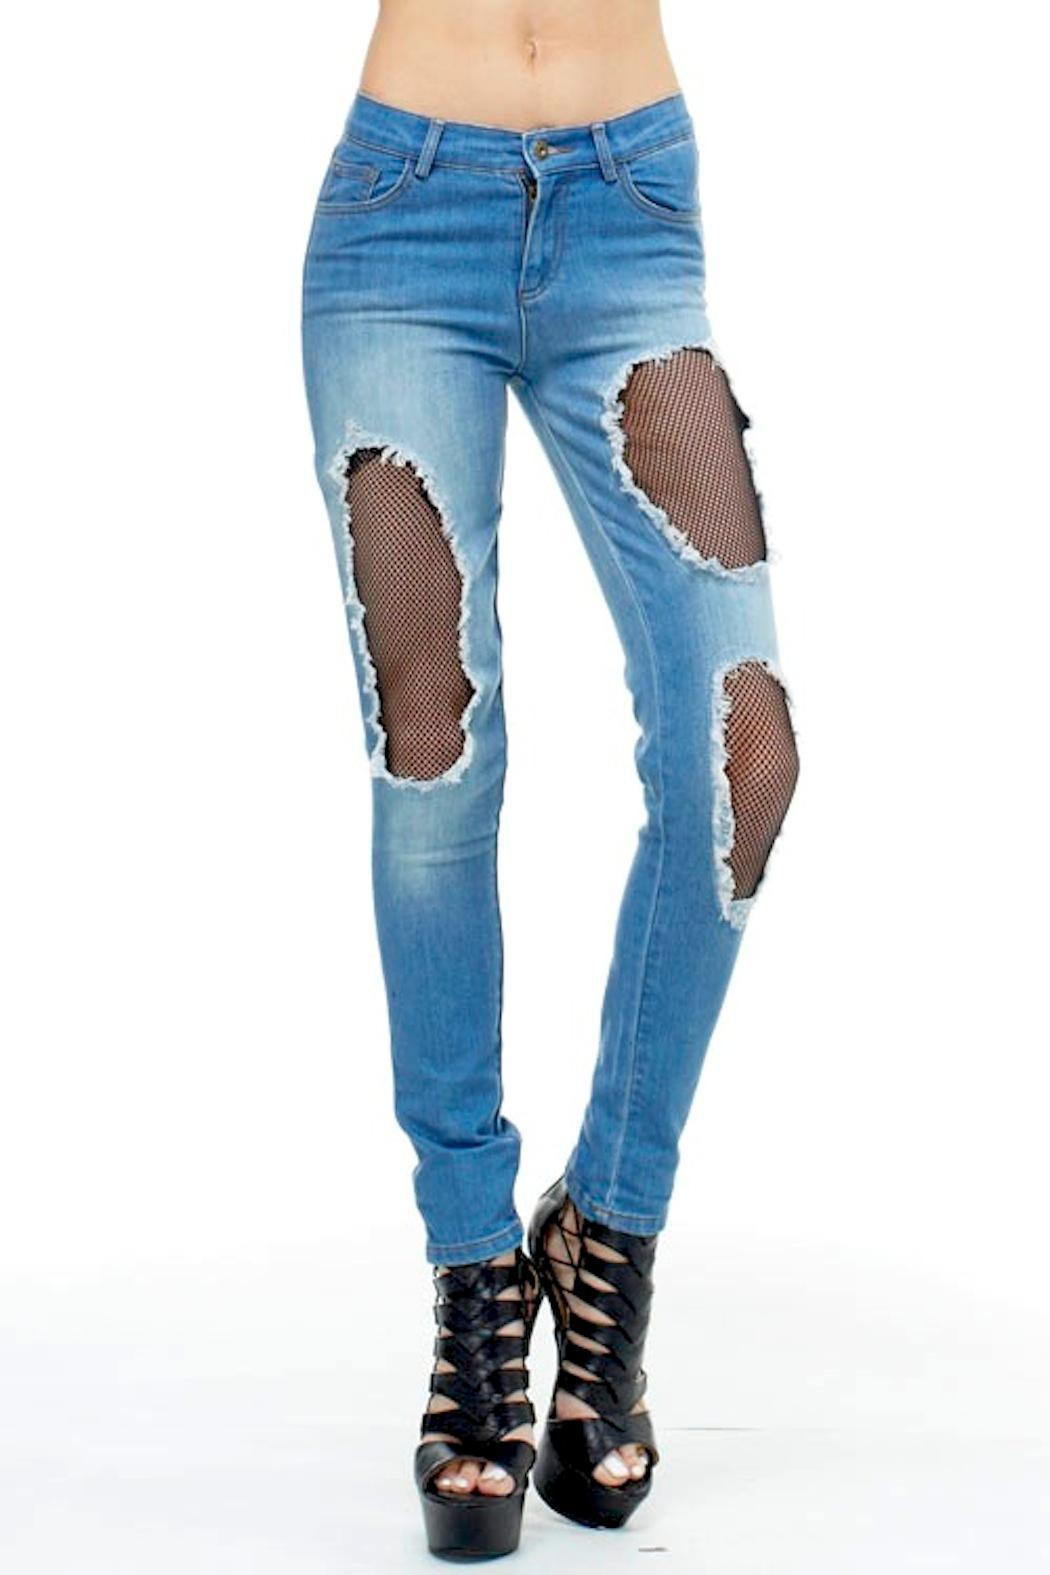 TOV High-Waisted Fishnet Jeans from Los Angeles by ...